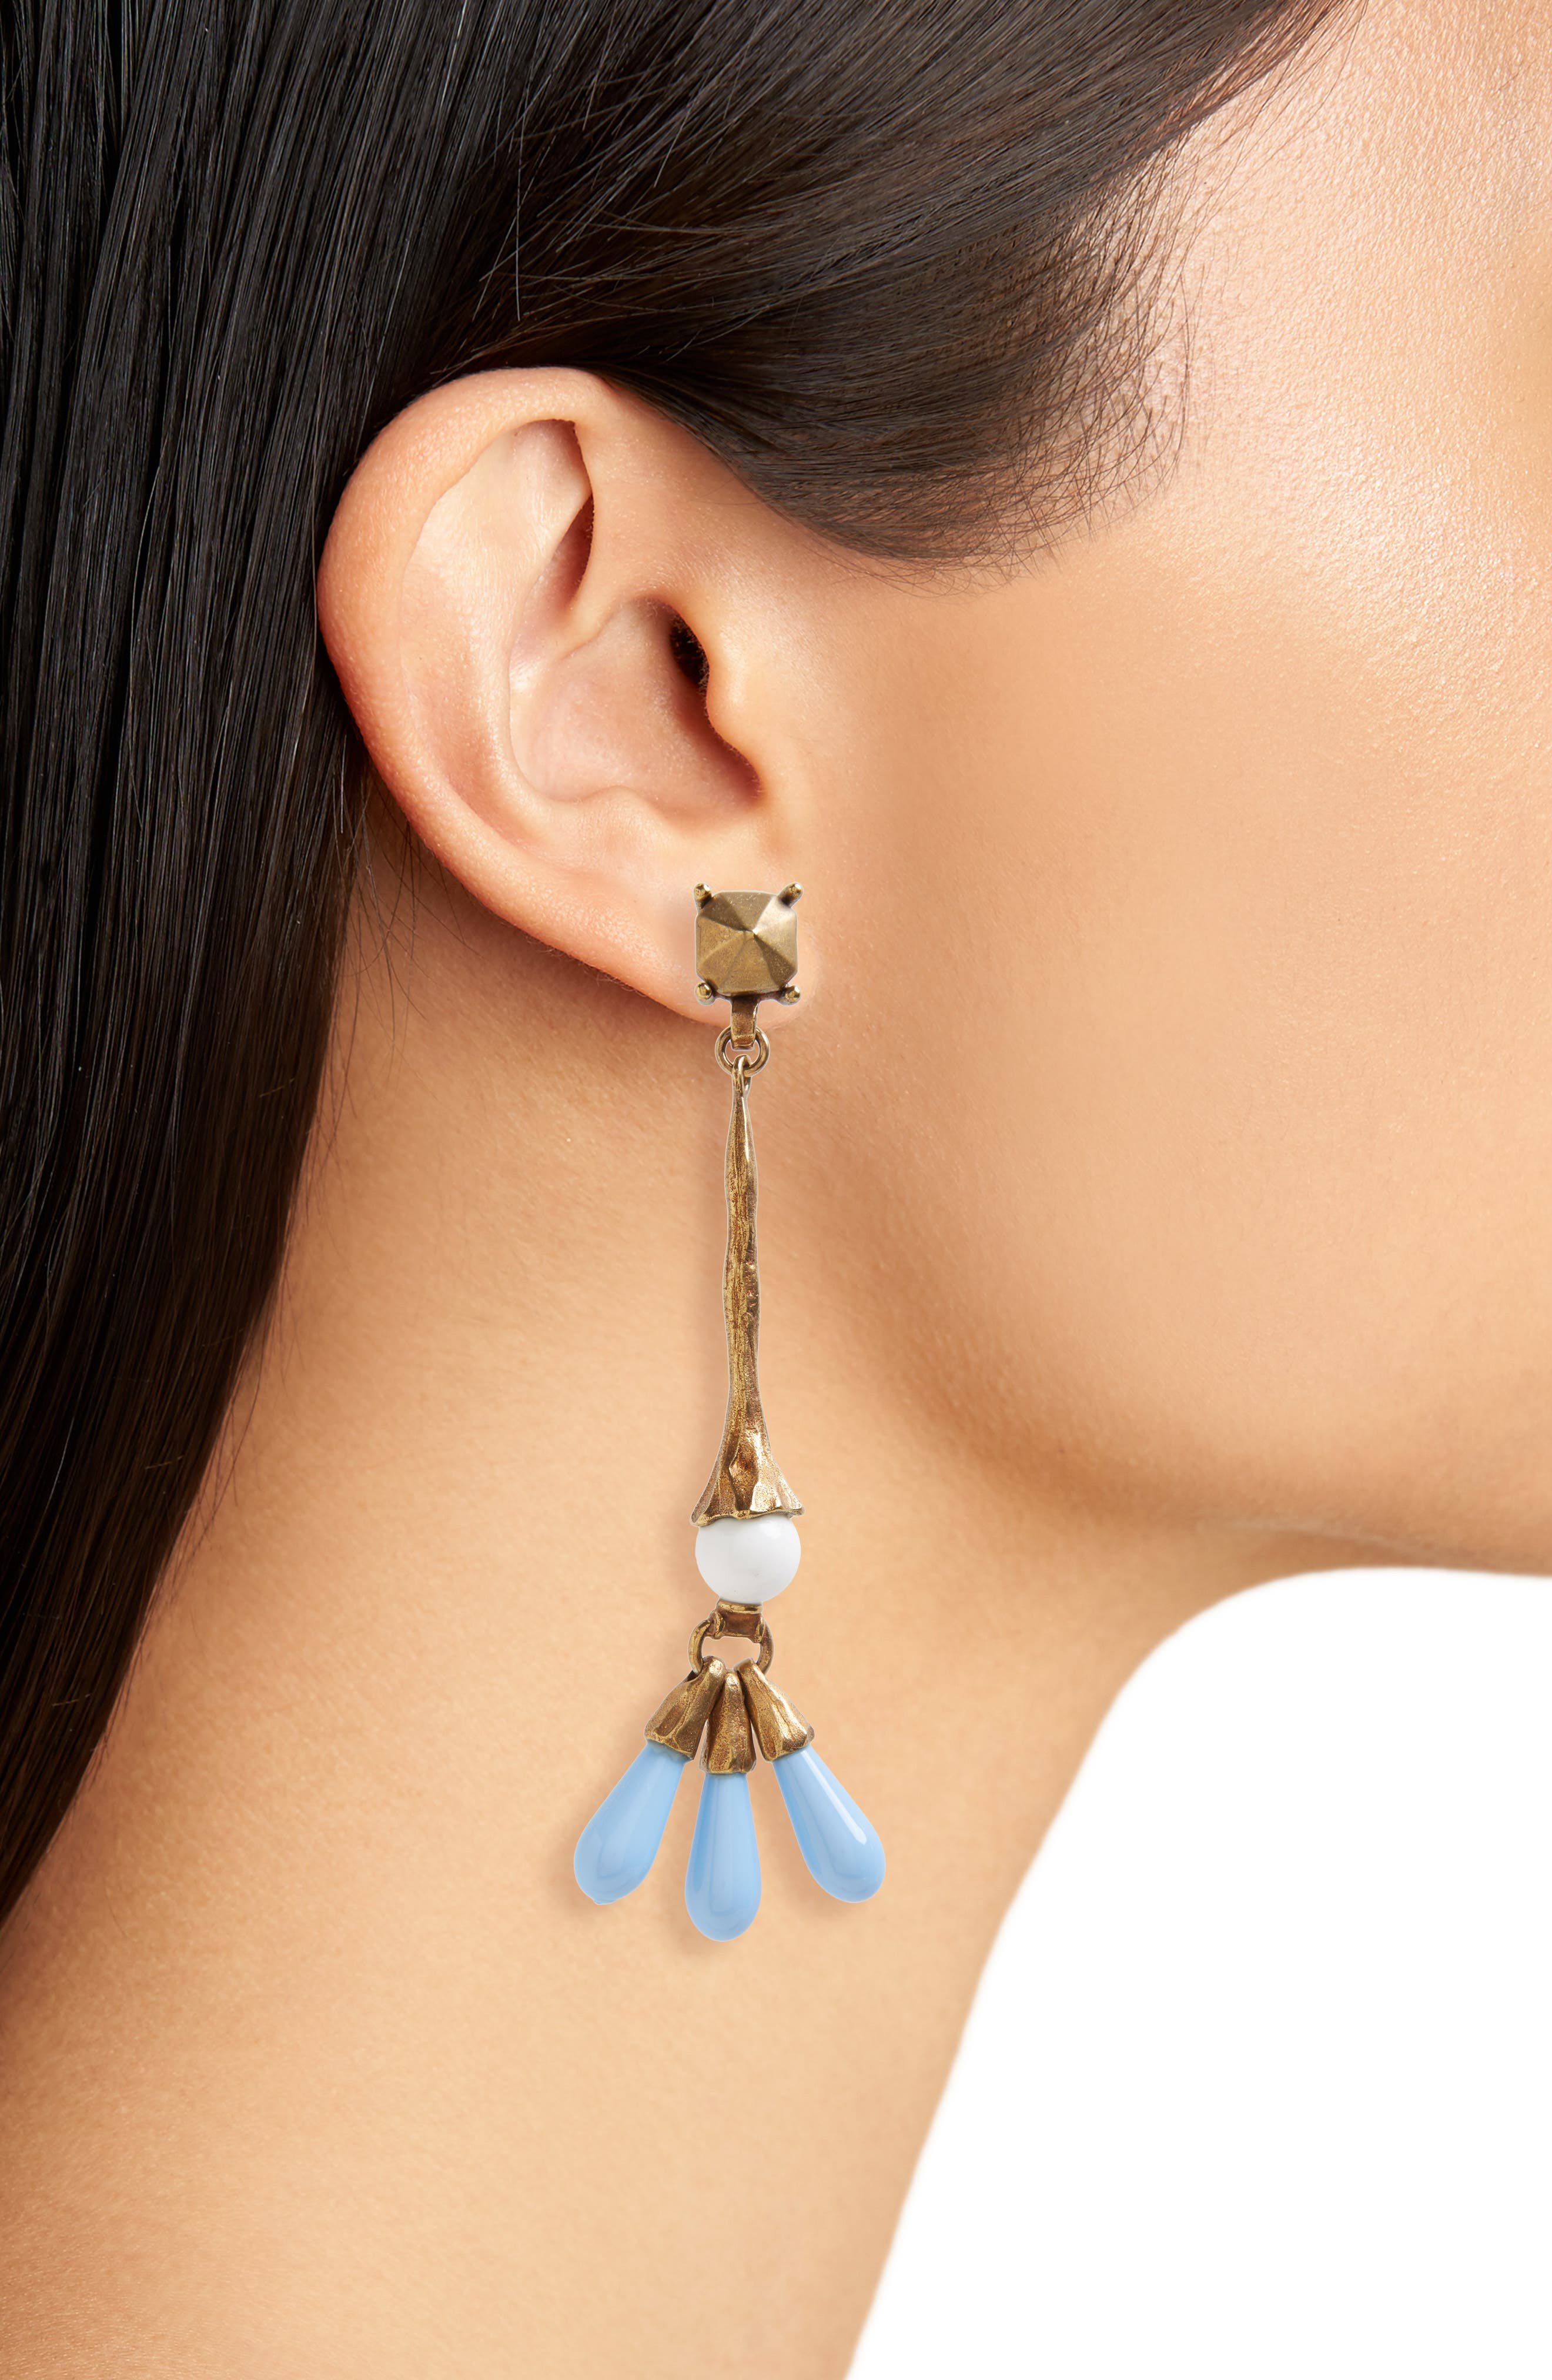 Drop Earrings,                             Alternate thumbnail 2, color,                             A.Gold/ Bianco/ Turchese